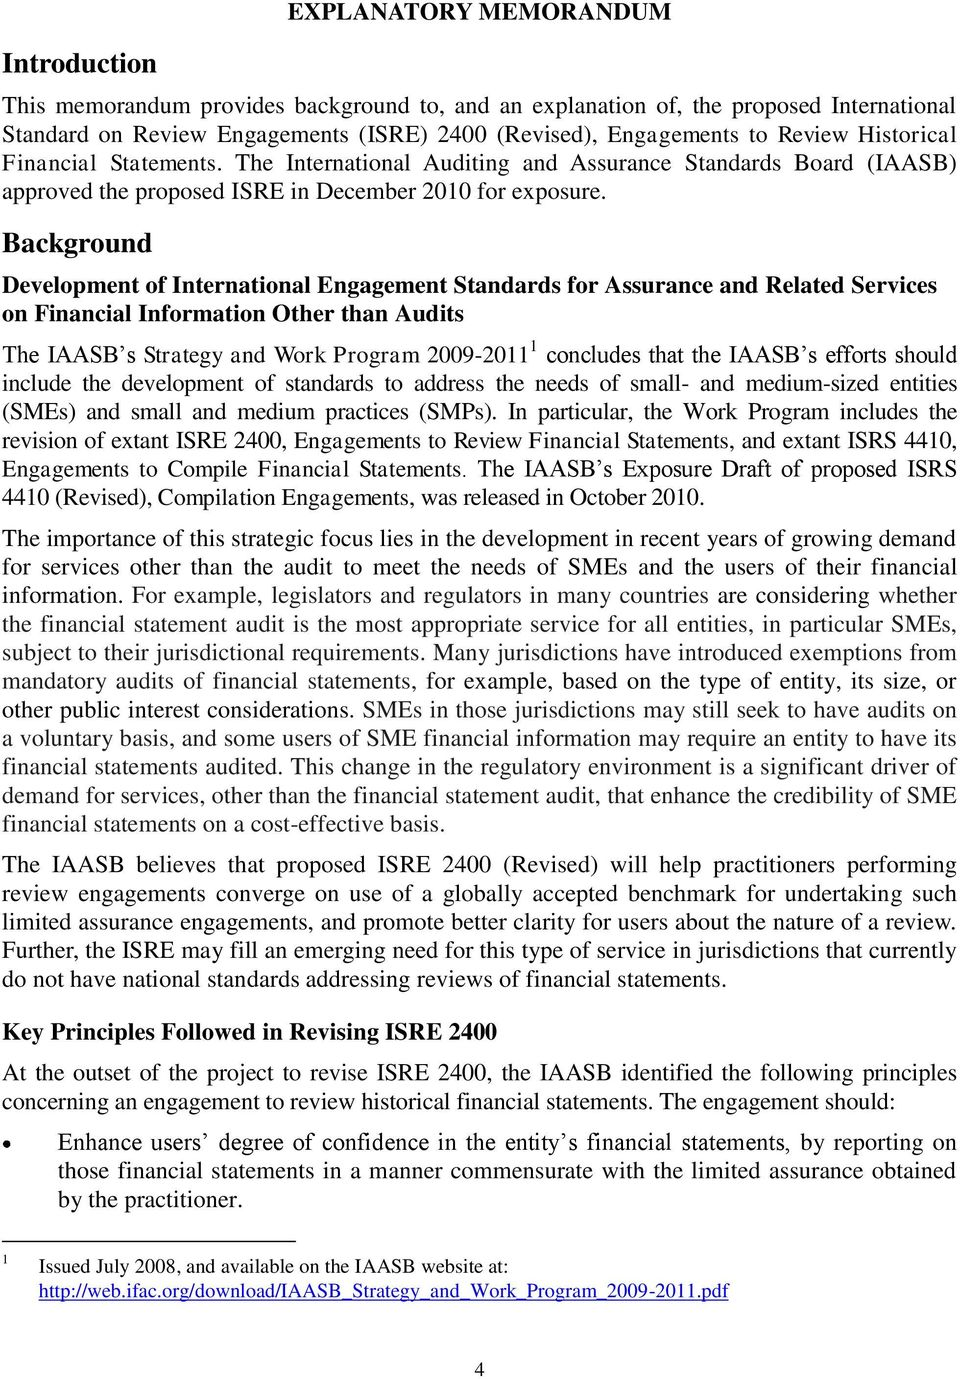 Background Development of International Engagement Standards for Assurance and Related Services on Financial Information Other than Audits The IAASB s Strategy and Work Program 2009-2011 1 concludes